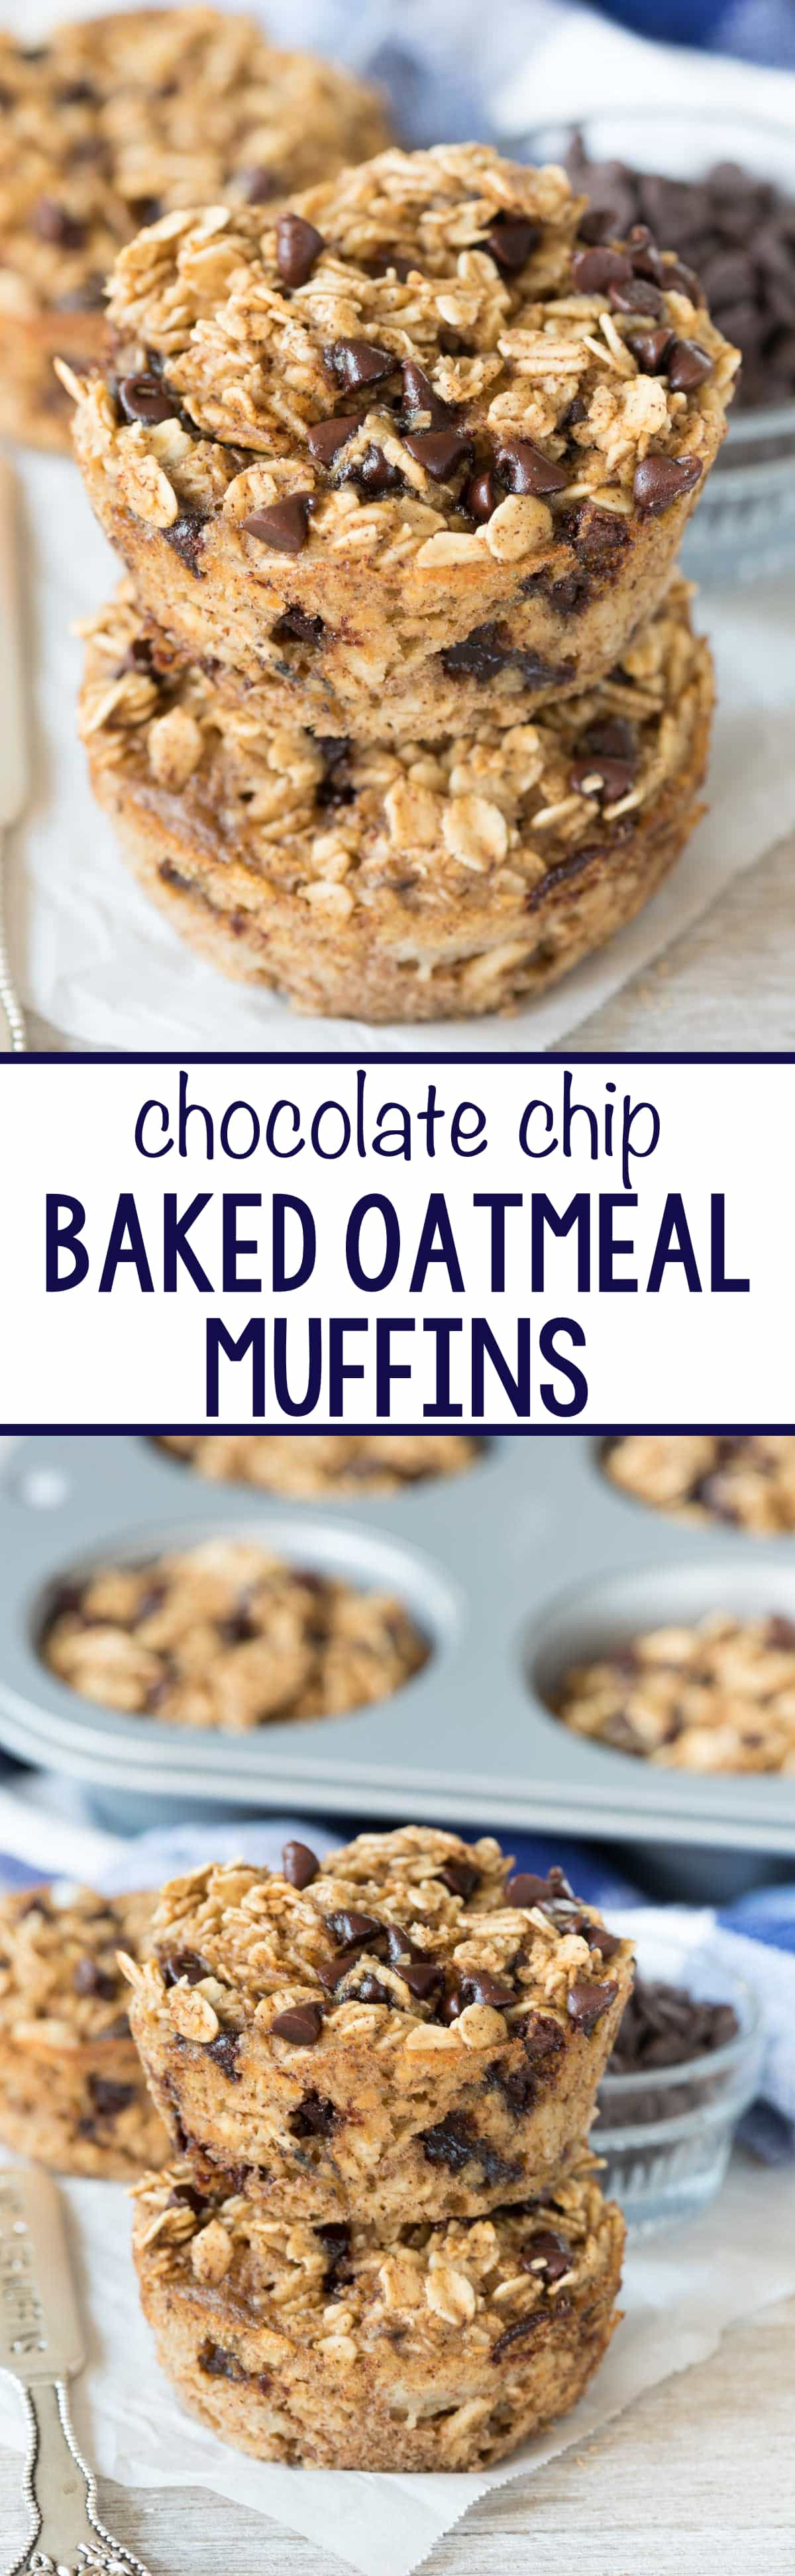 Chocolate Chip Baked Oatmeal Muffins - this EASY breakfast recipe is great for on the go! It's a healthier muffin that's dairy free and has no oil or flour but tastes like an amazing chocolate chip dessert!